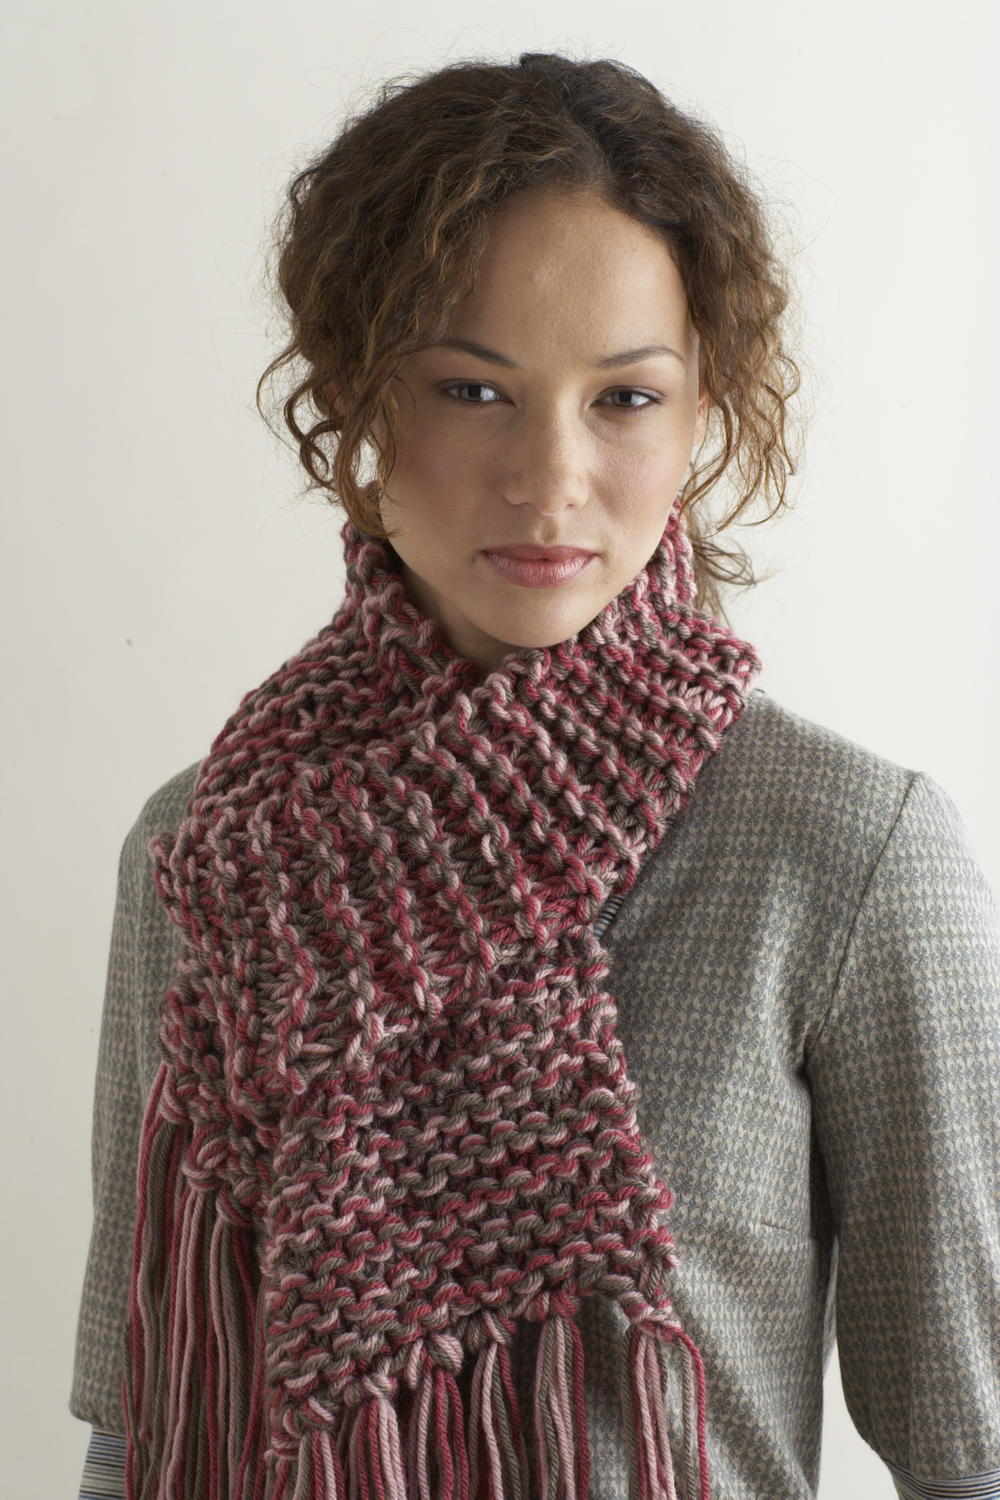 Knitting Pattern For Yarn Over Scarf : Knit Two Hours or Less Scarf FaveCrafts.com